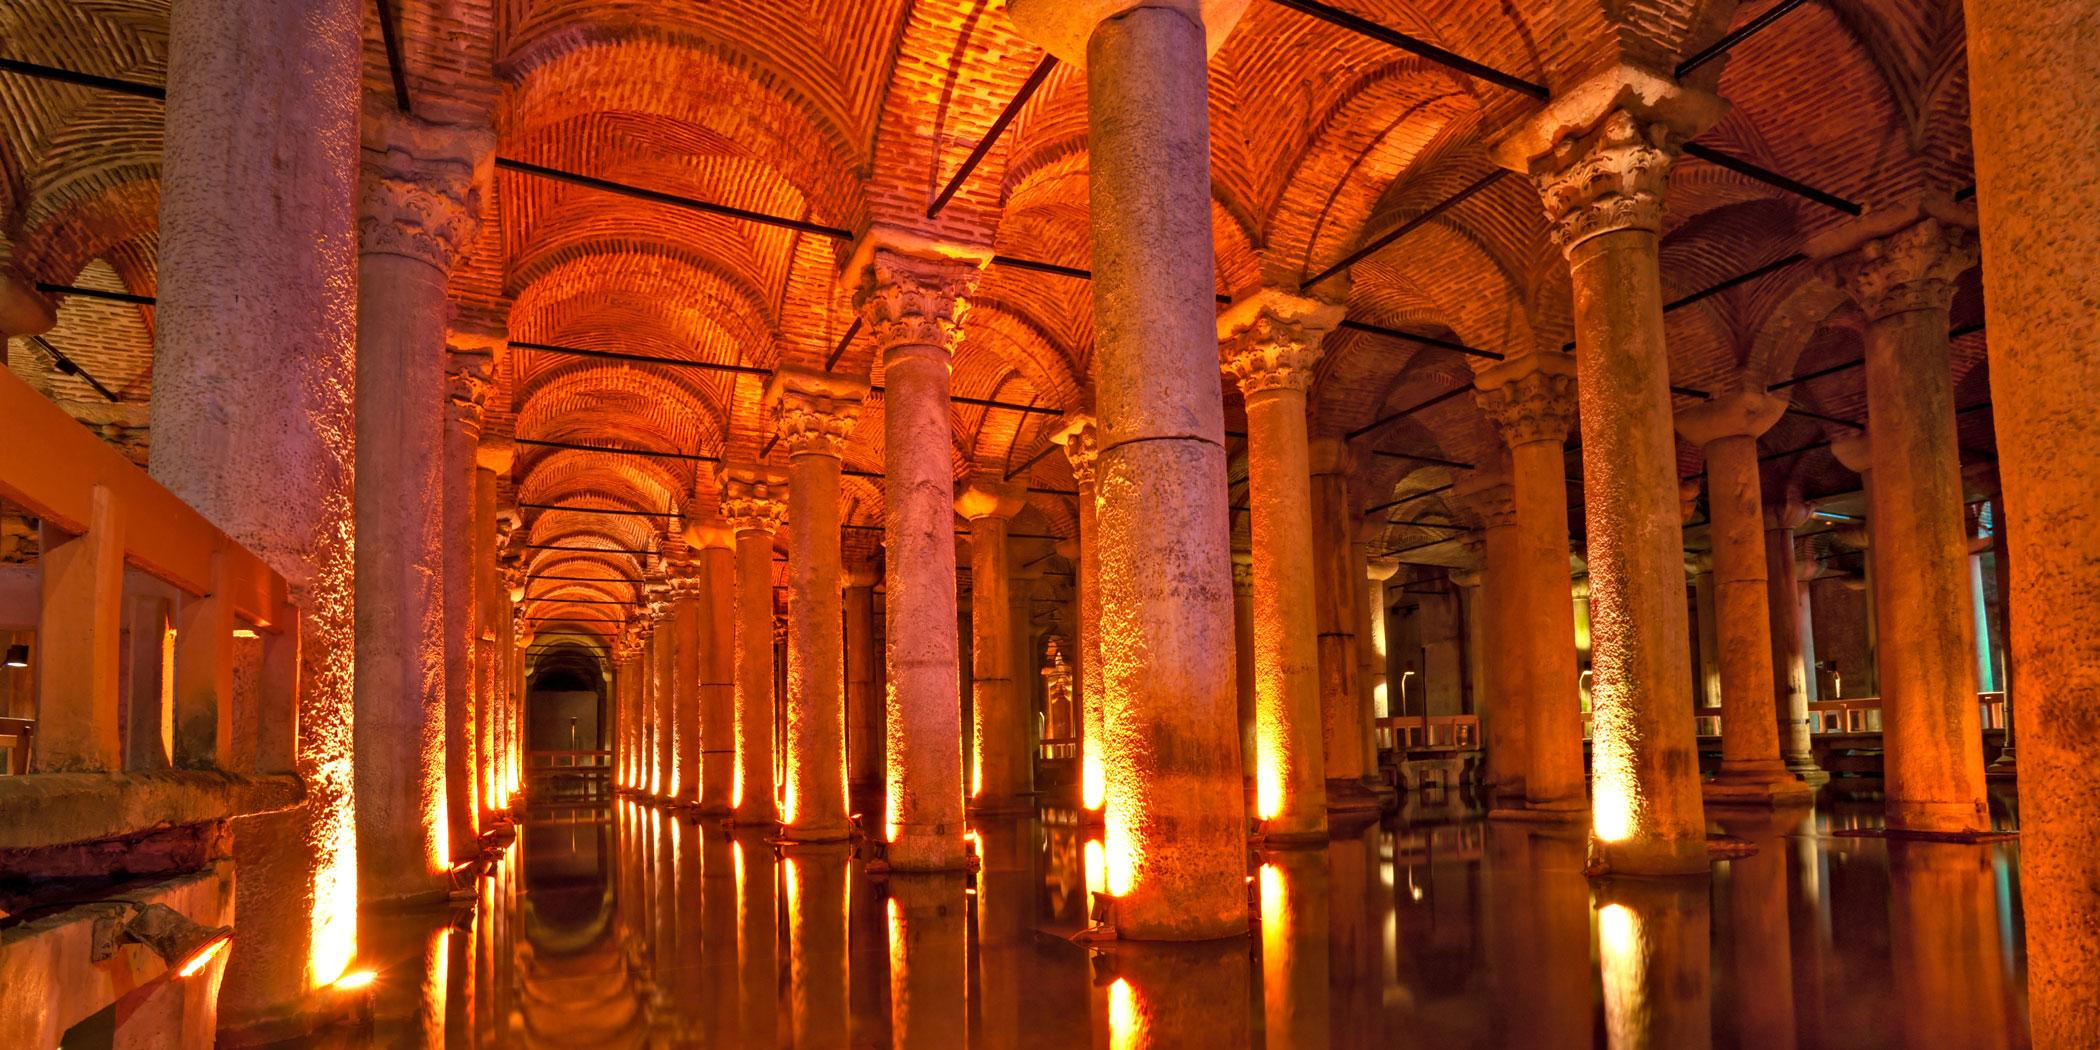 The Basilica Cistern Photo Adobe Stock